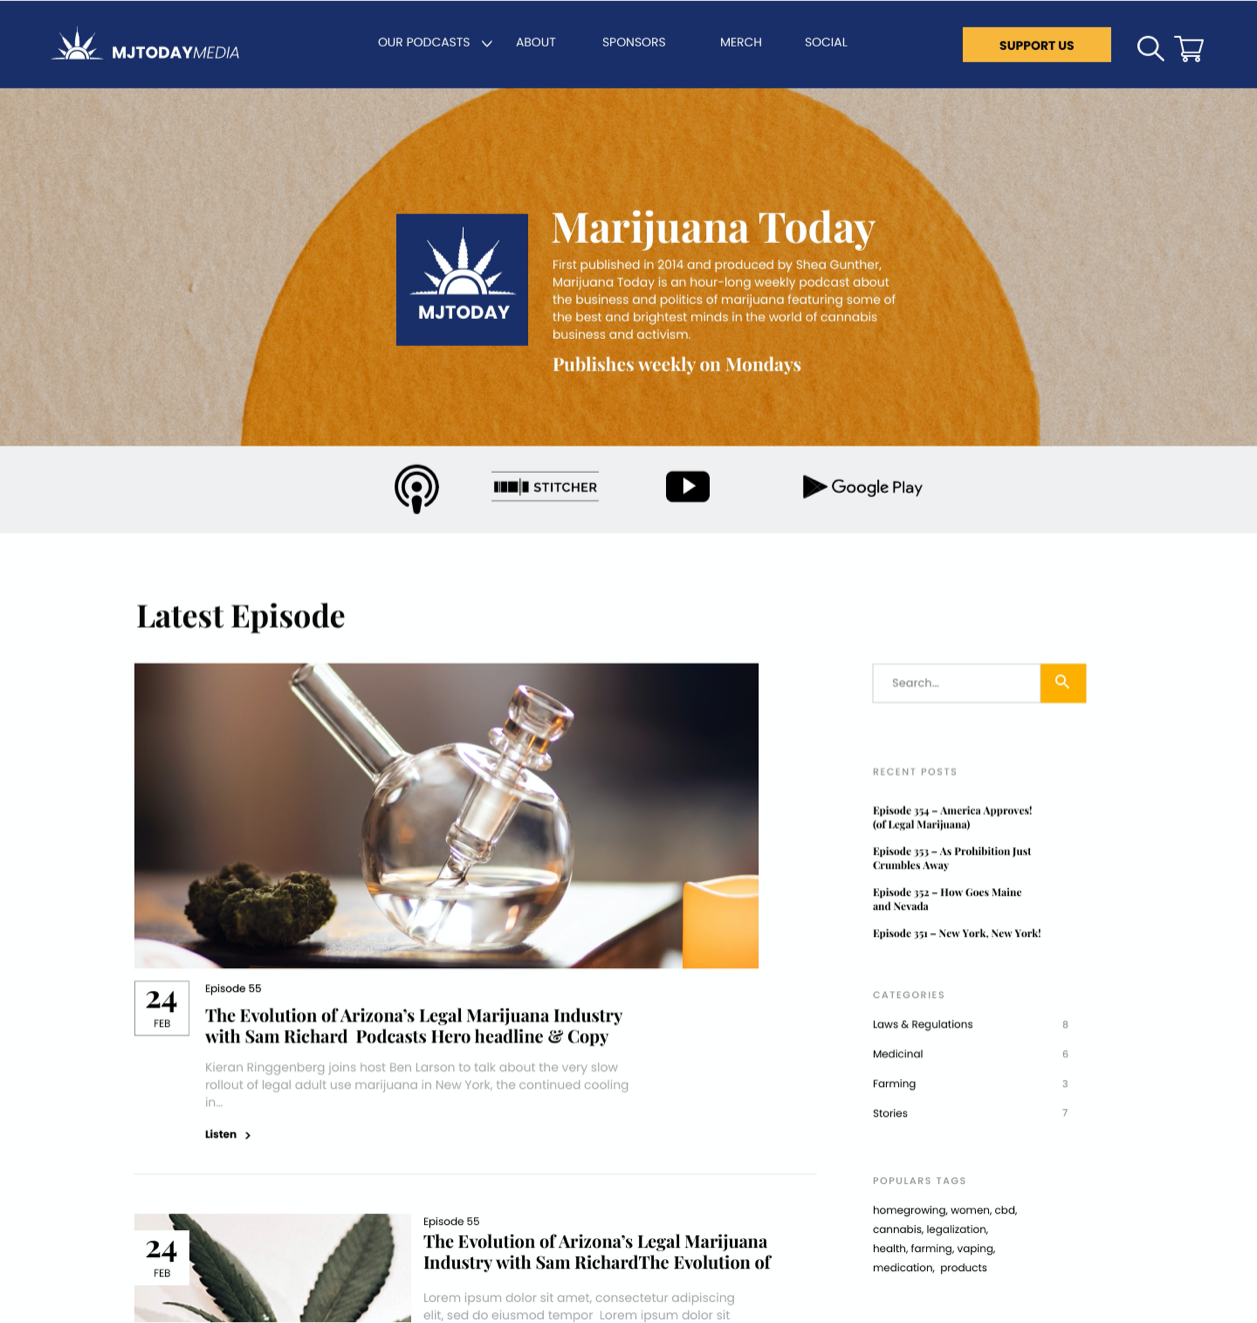 MJToday podcast page. Large yellow circle in hero along with title, Marijuana Today. Latest episode show at top with right rail to select others.